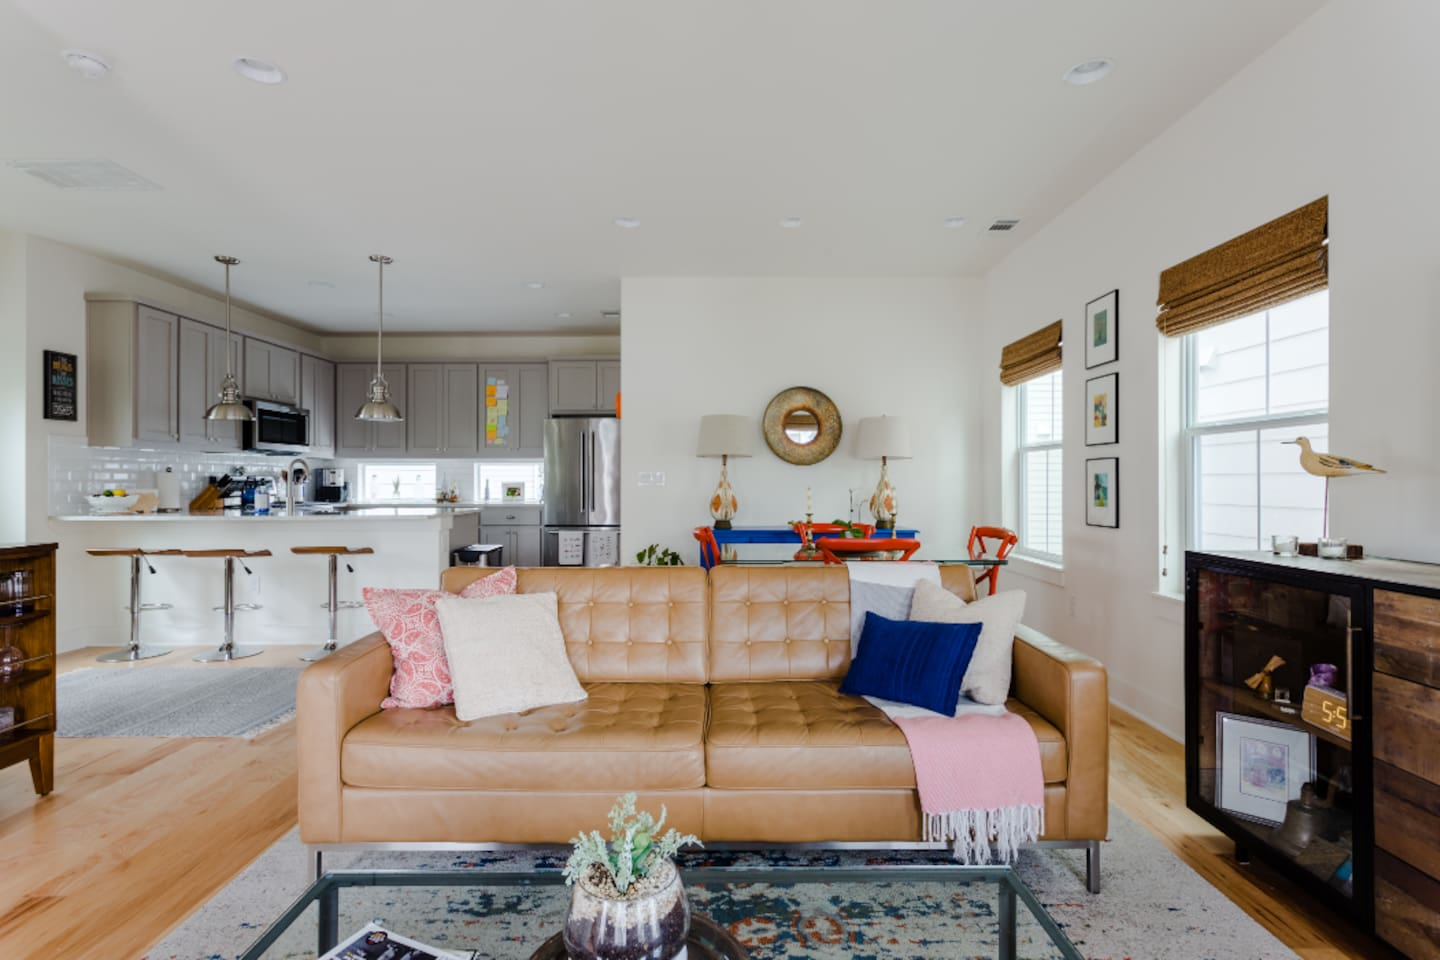 """""""The living area is my favorite part of this house because it's got a big leather couch to relax and is a nice place to hang out. It's a wide-open and everyone can gather there."""""""